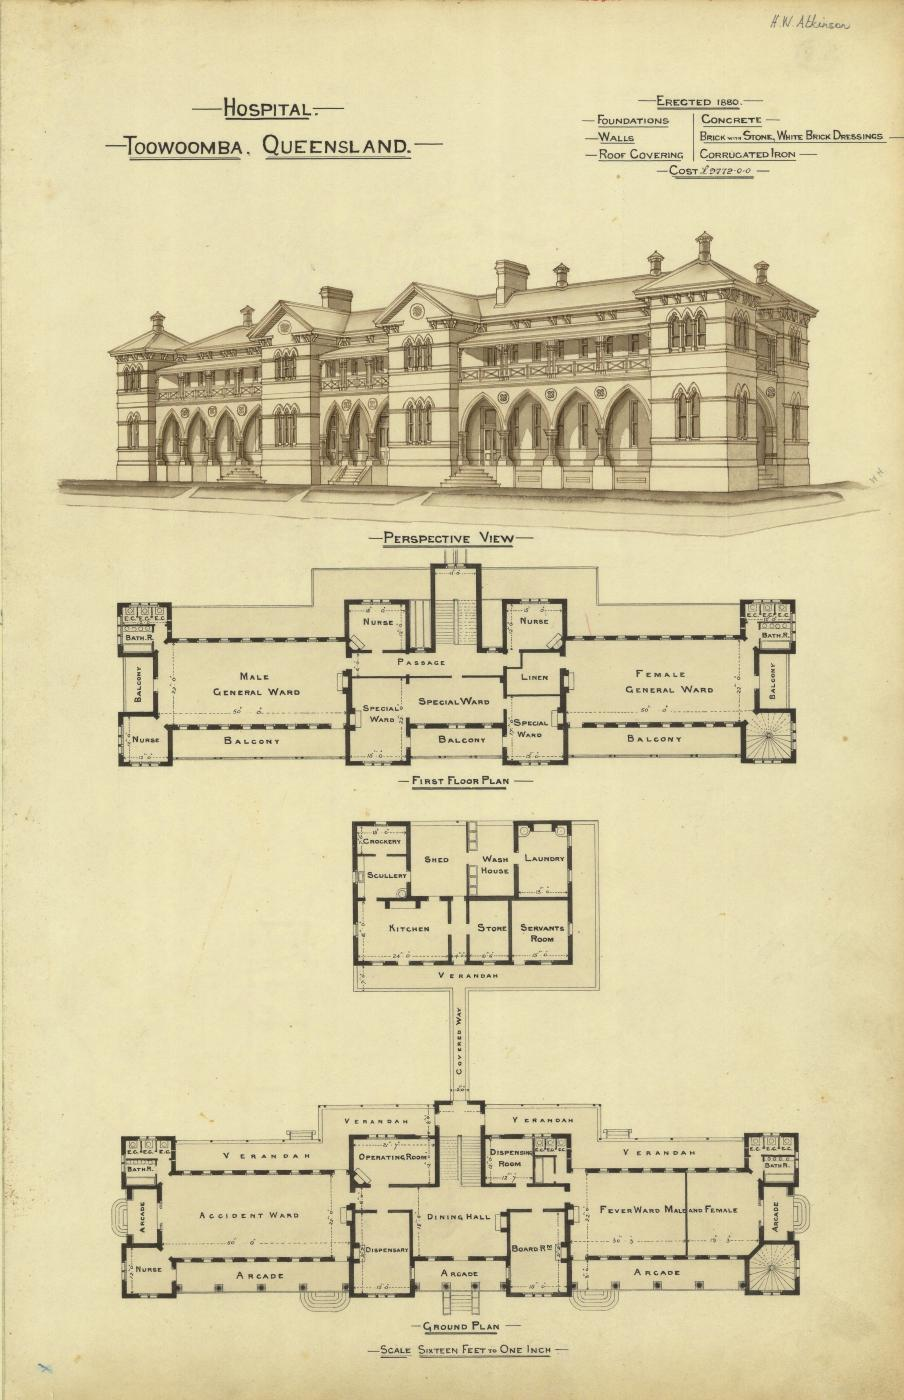 Architectural plans and perspective drawing of the hospital, Toowoomba